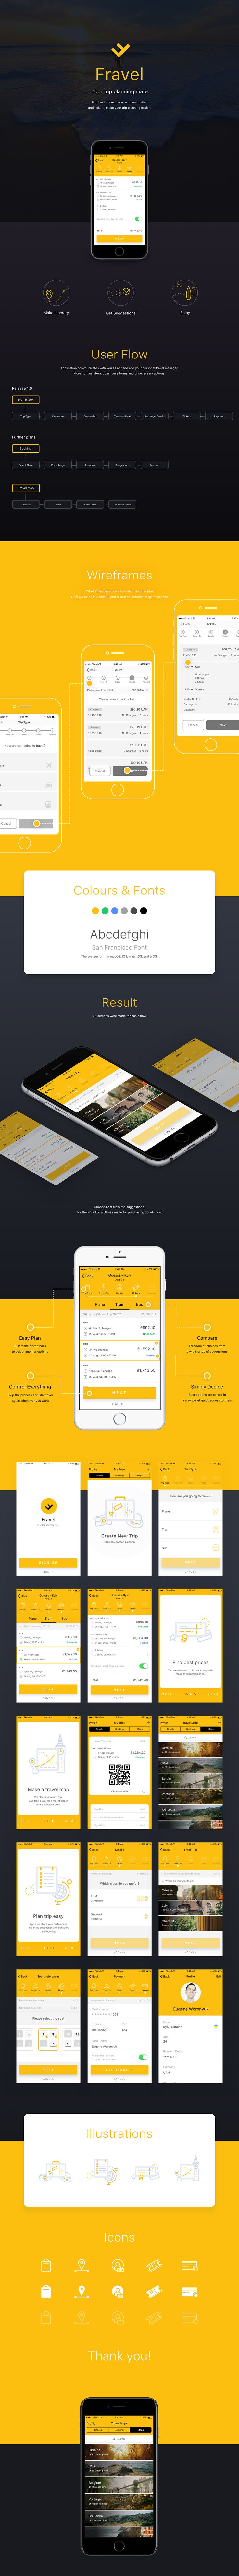 Fravel is a trip planning mobile application. It helps you to look for accommodation and tickets, find best prices and make your trip planning much easier. Application communicates with you as a friend and your personal travel manager. More human interact…